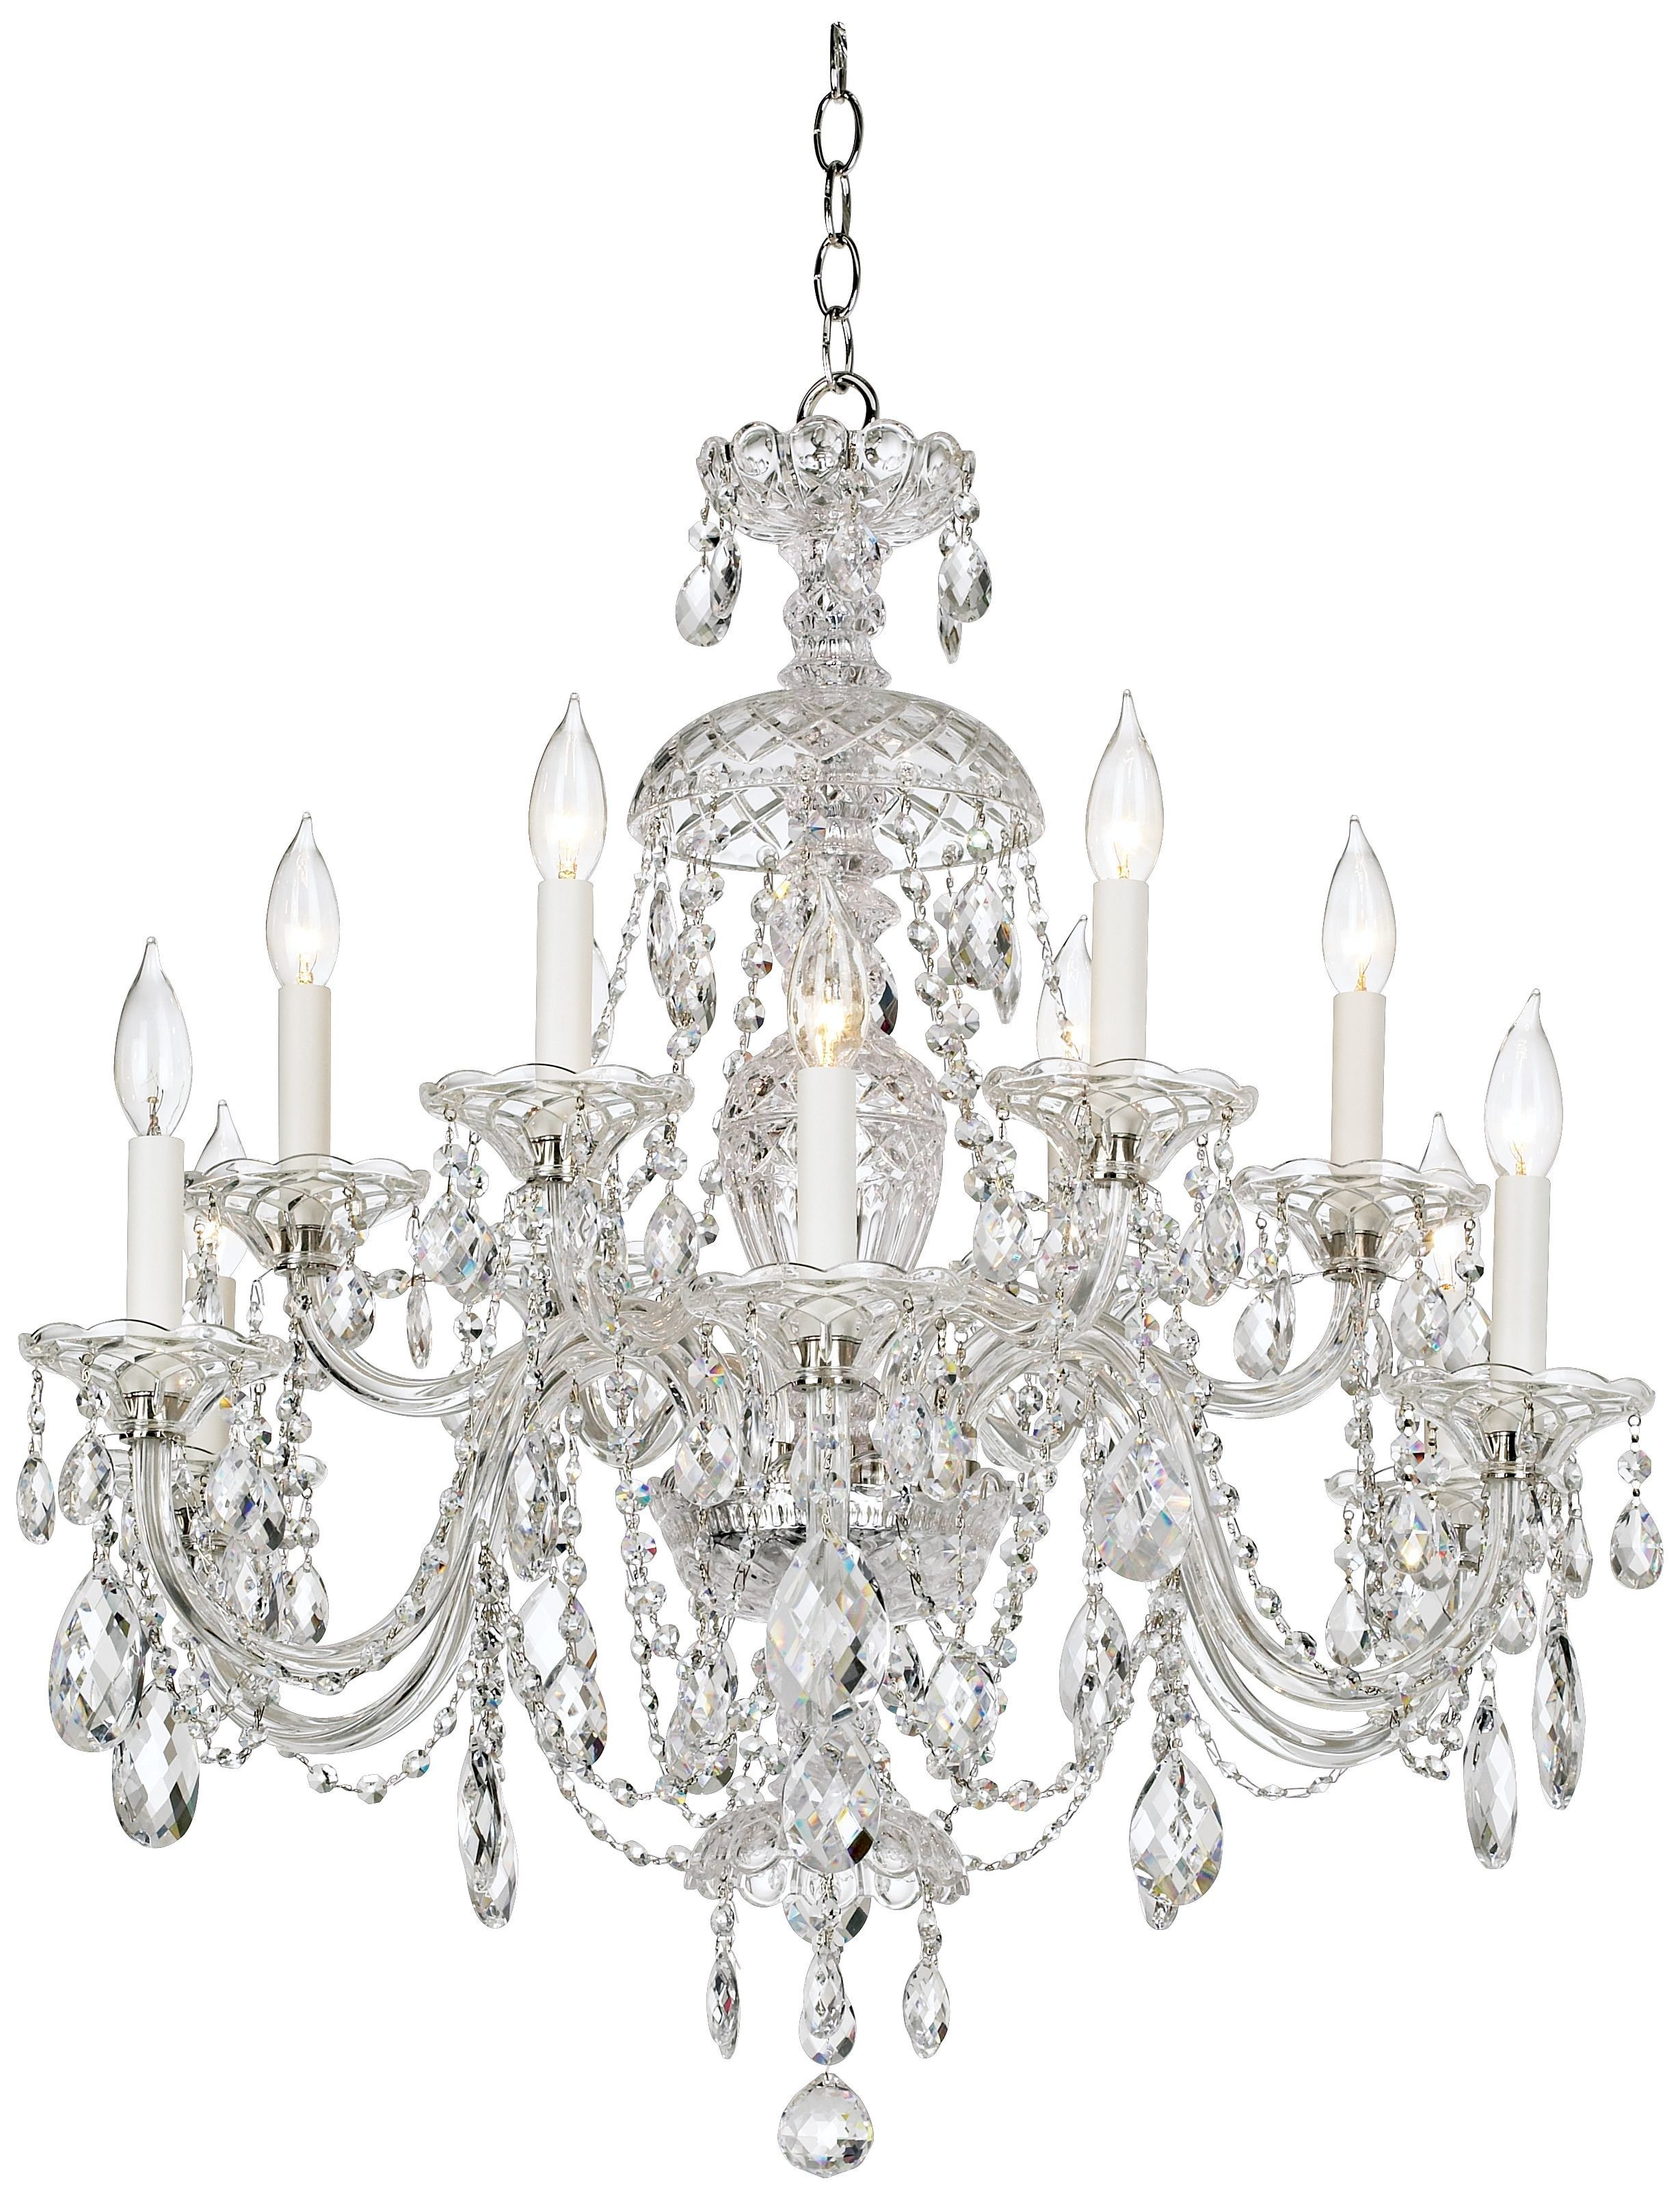 Crystal Chandeliers Ping Guide Photos Architectural Digest